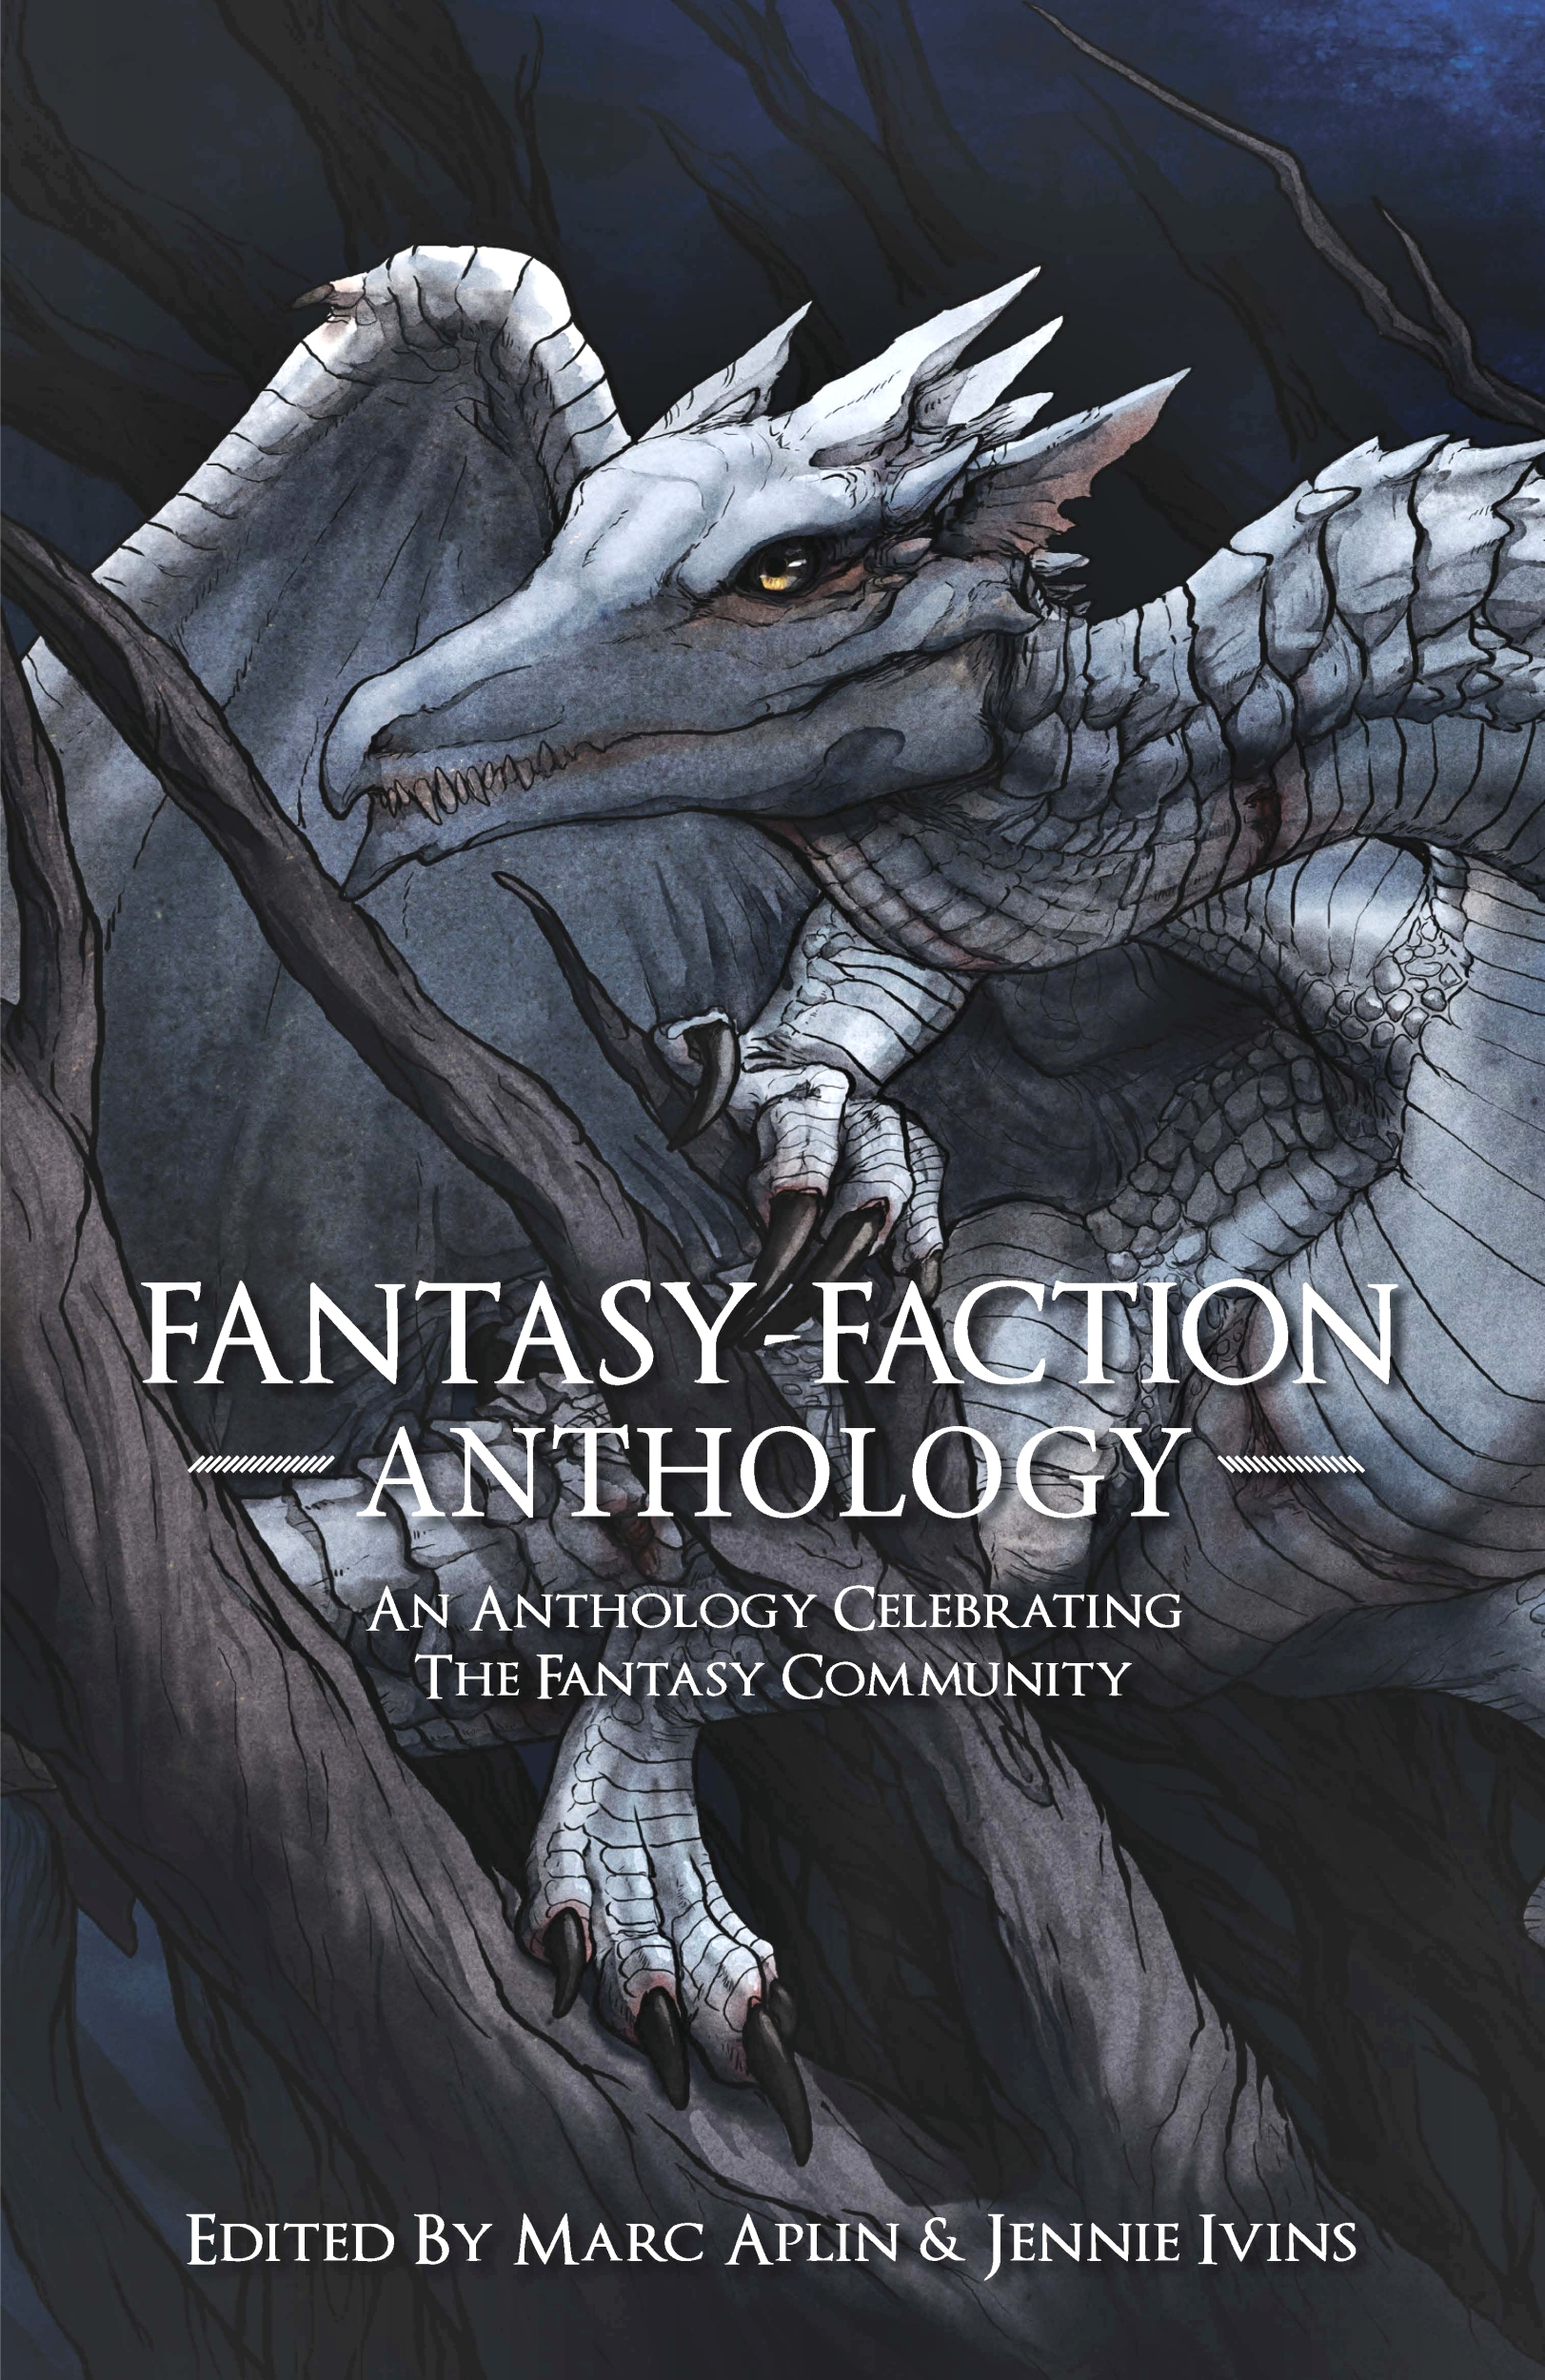 Fantasy-Faction Anthology (cover)